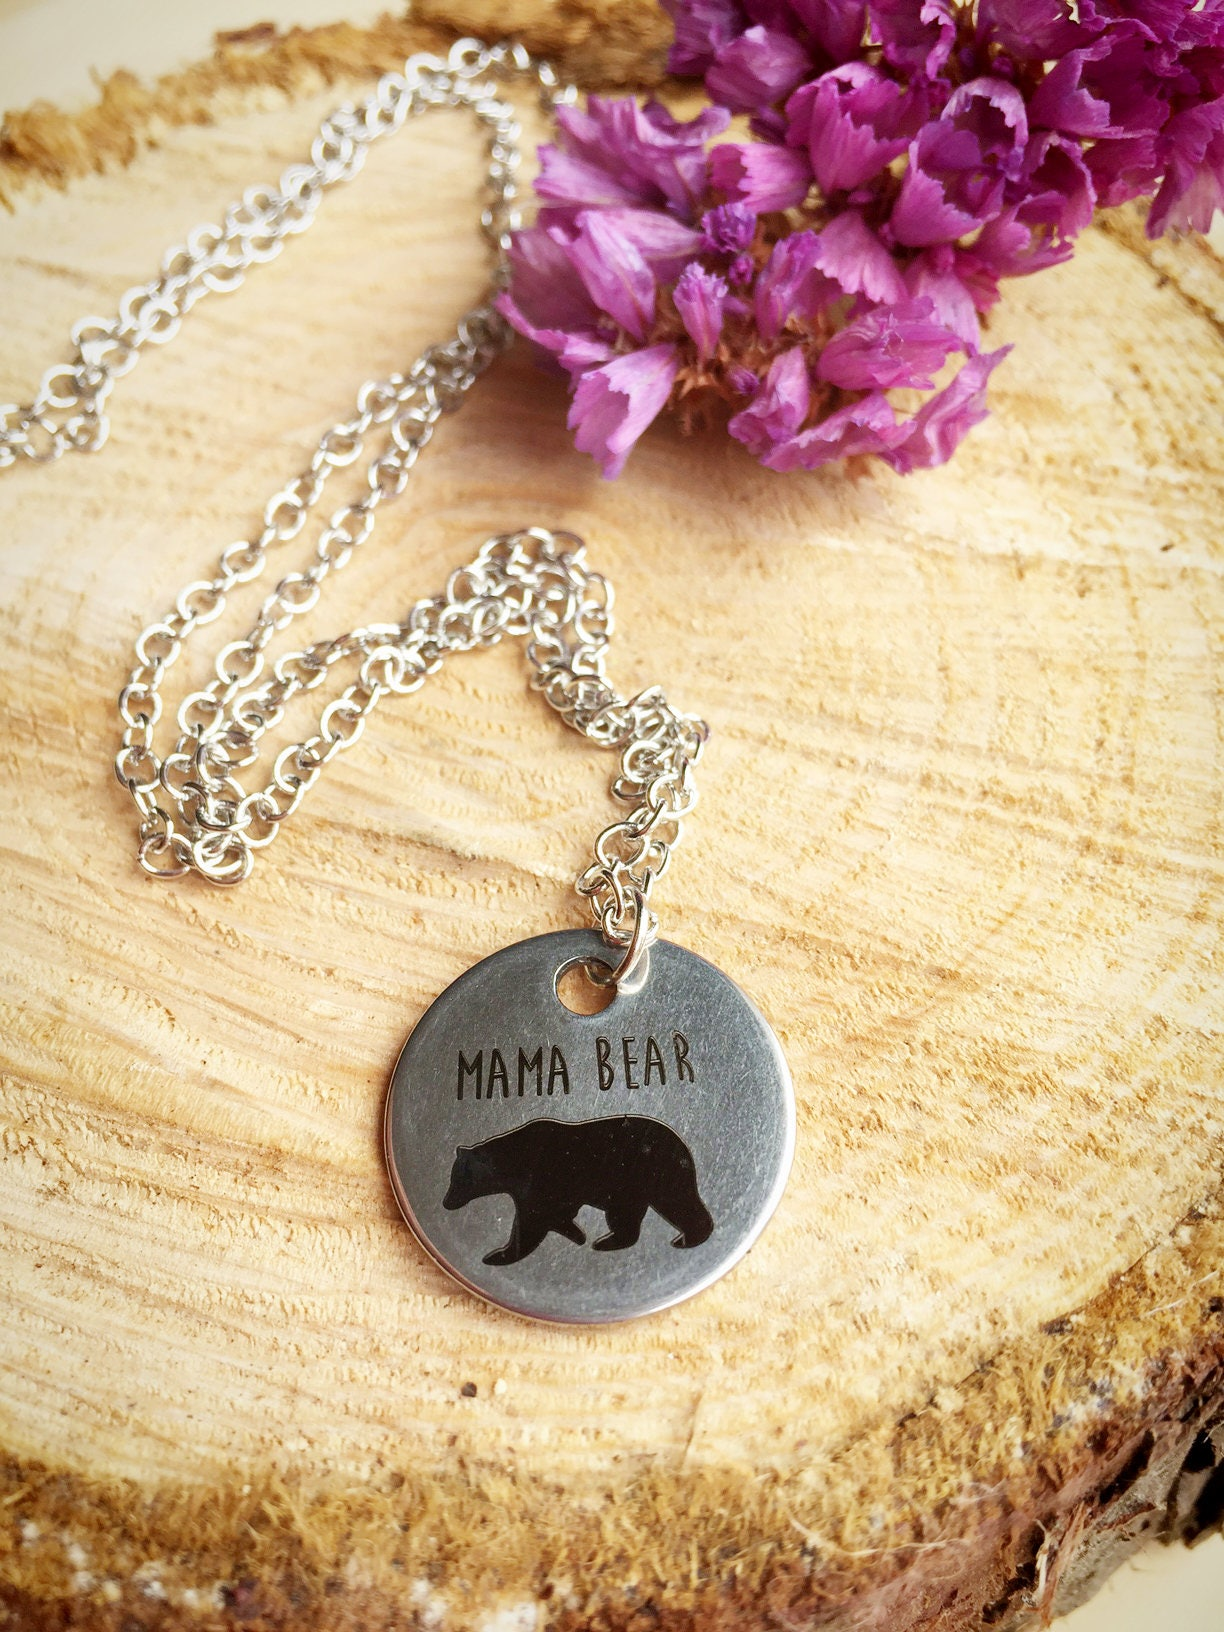 Baby Gift Jewelry For Mom : Mama bear necklace mom baby shower gift